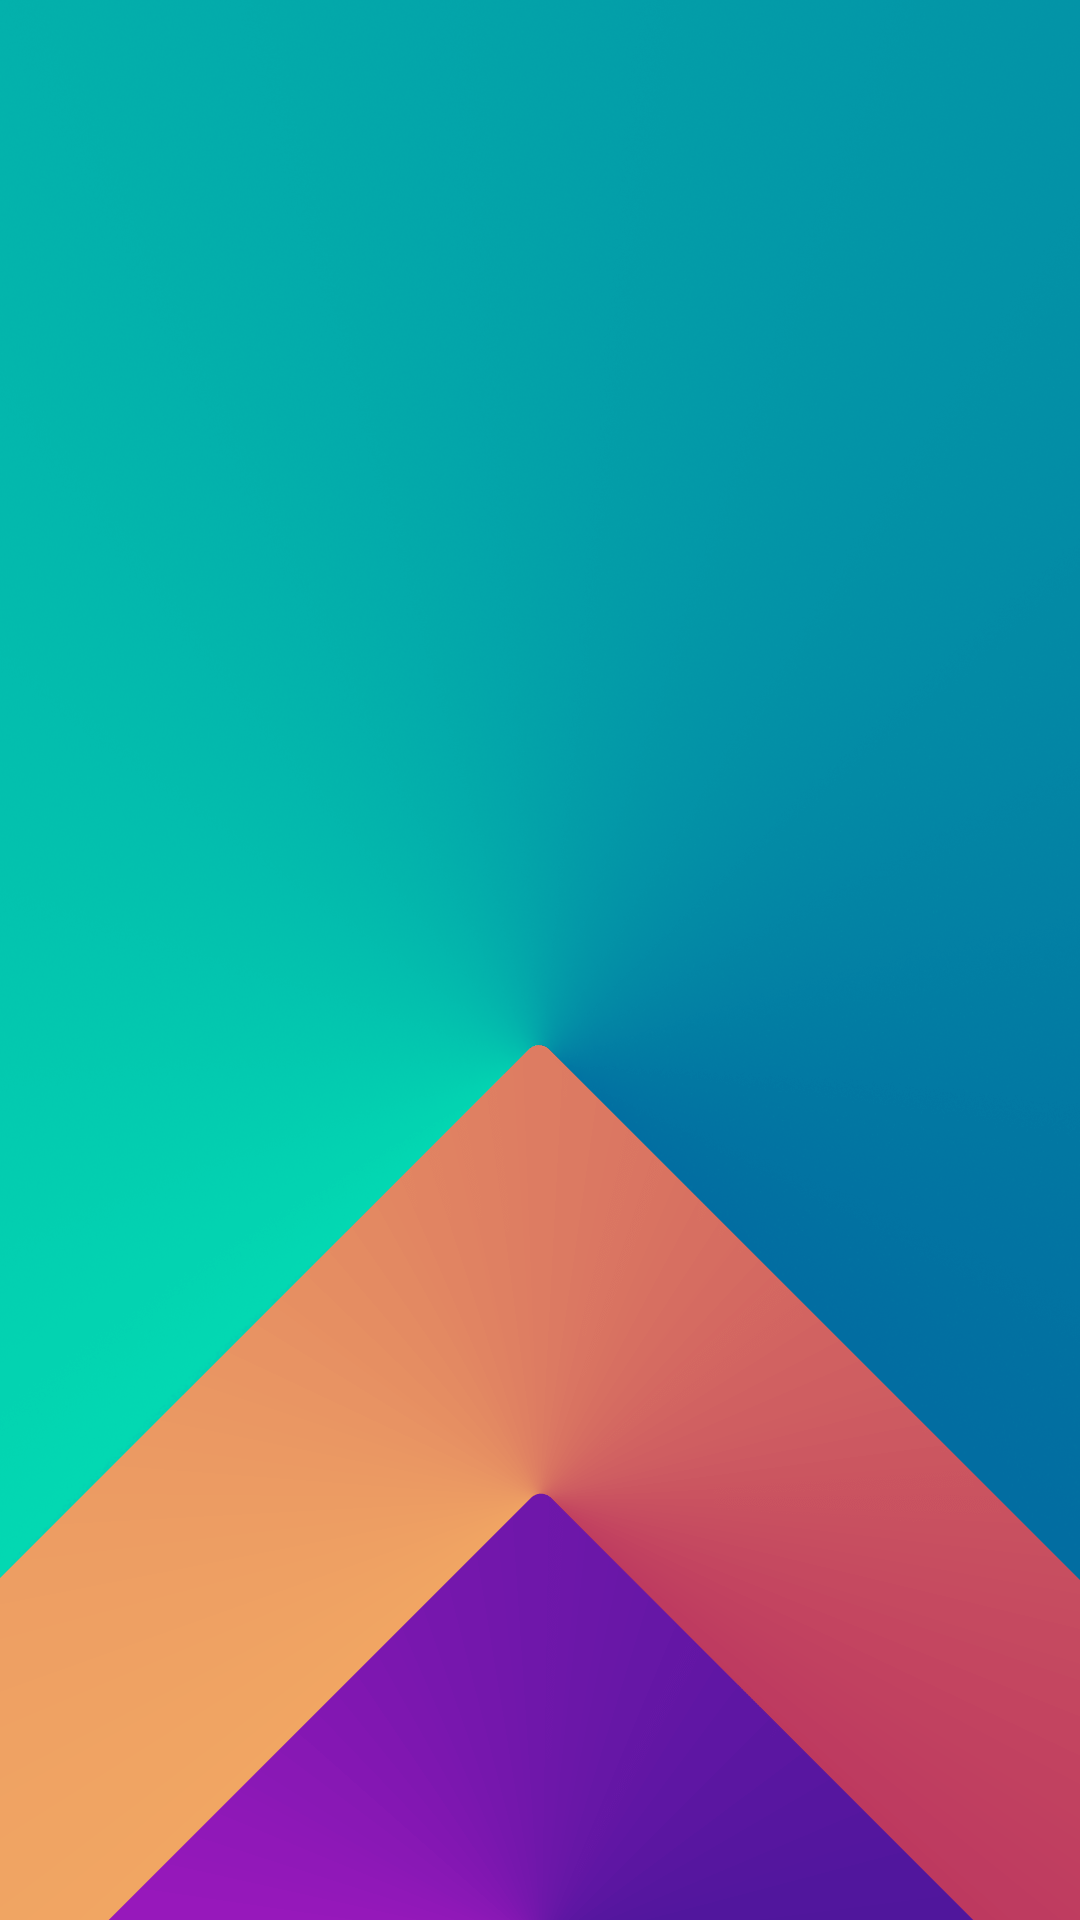 Iphone 5a Hd Wallpapers Vivo Funtouchos Official System Wallpaper On Behance